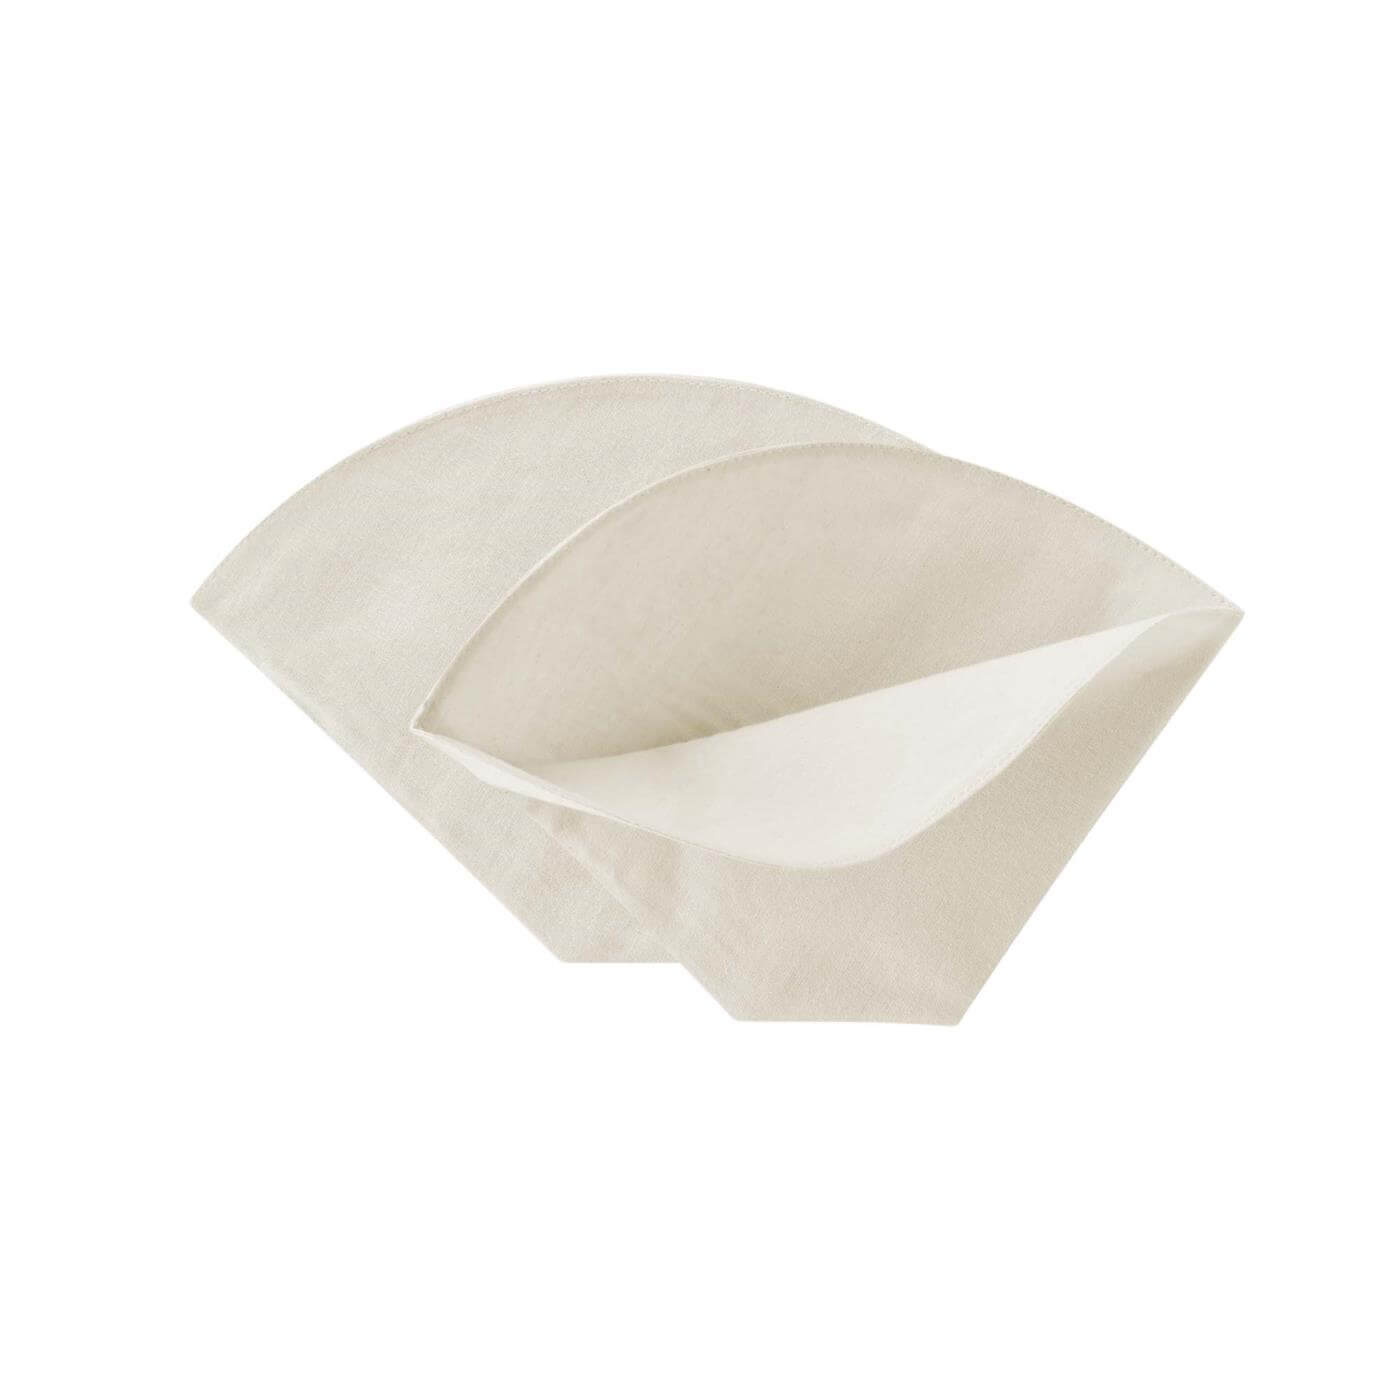 Coffee filter, pack of 2